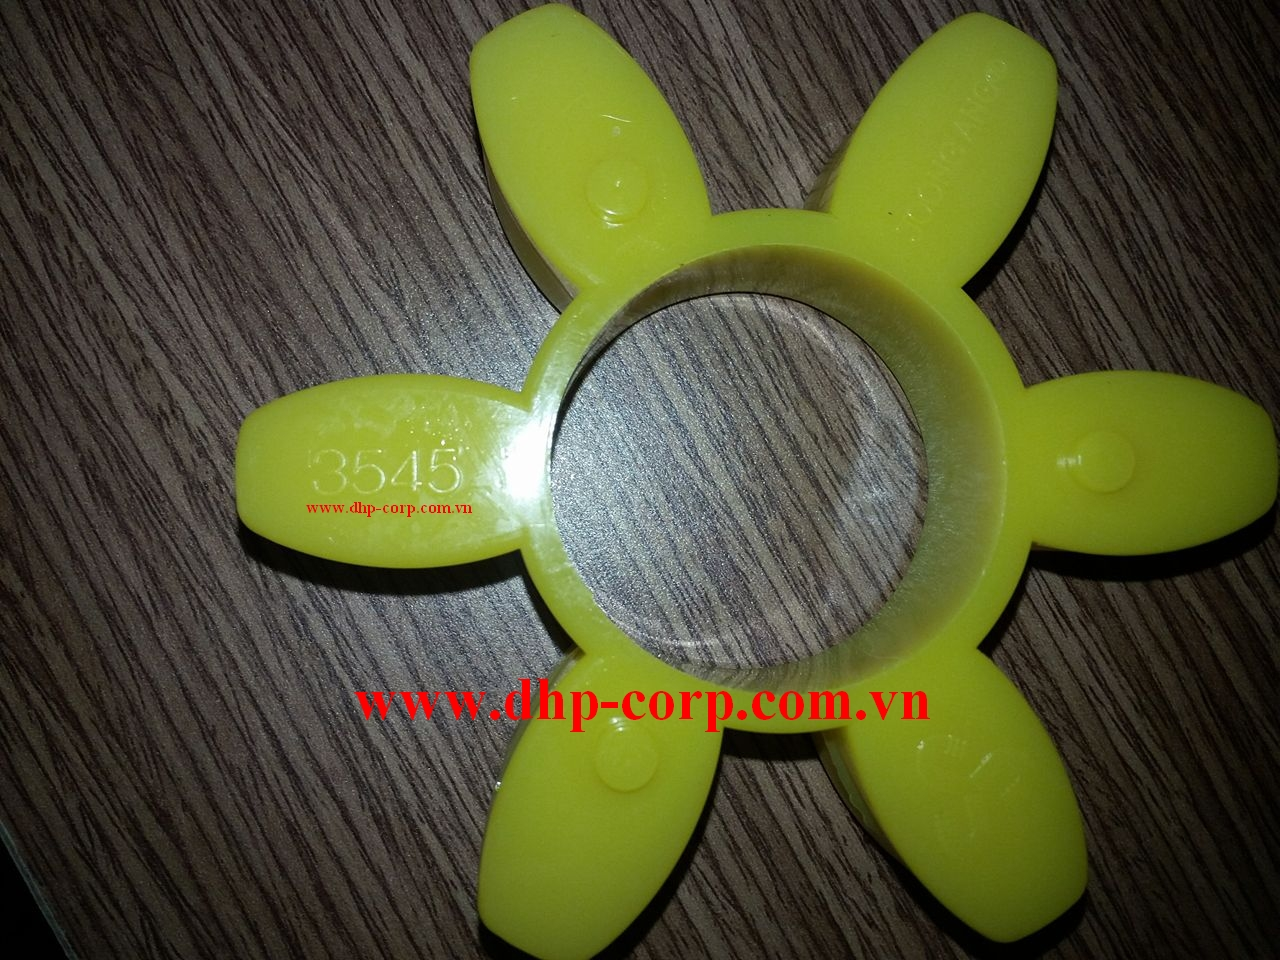 Spider couplings CR 3545- Giảm chấn khớp nối CR 3545